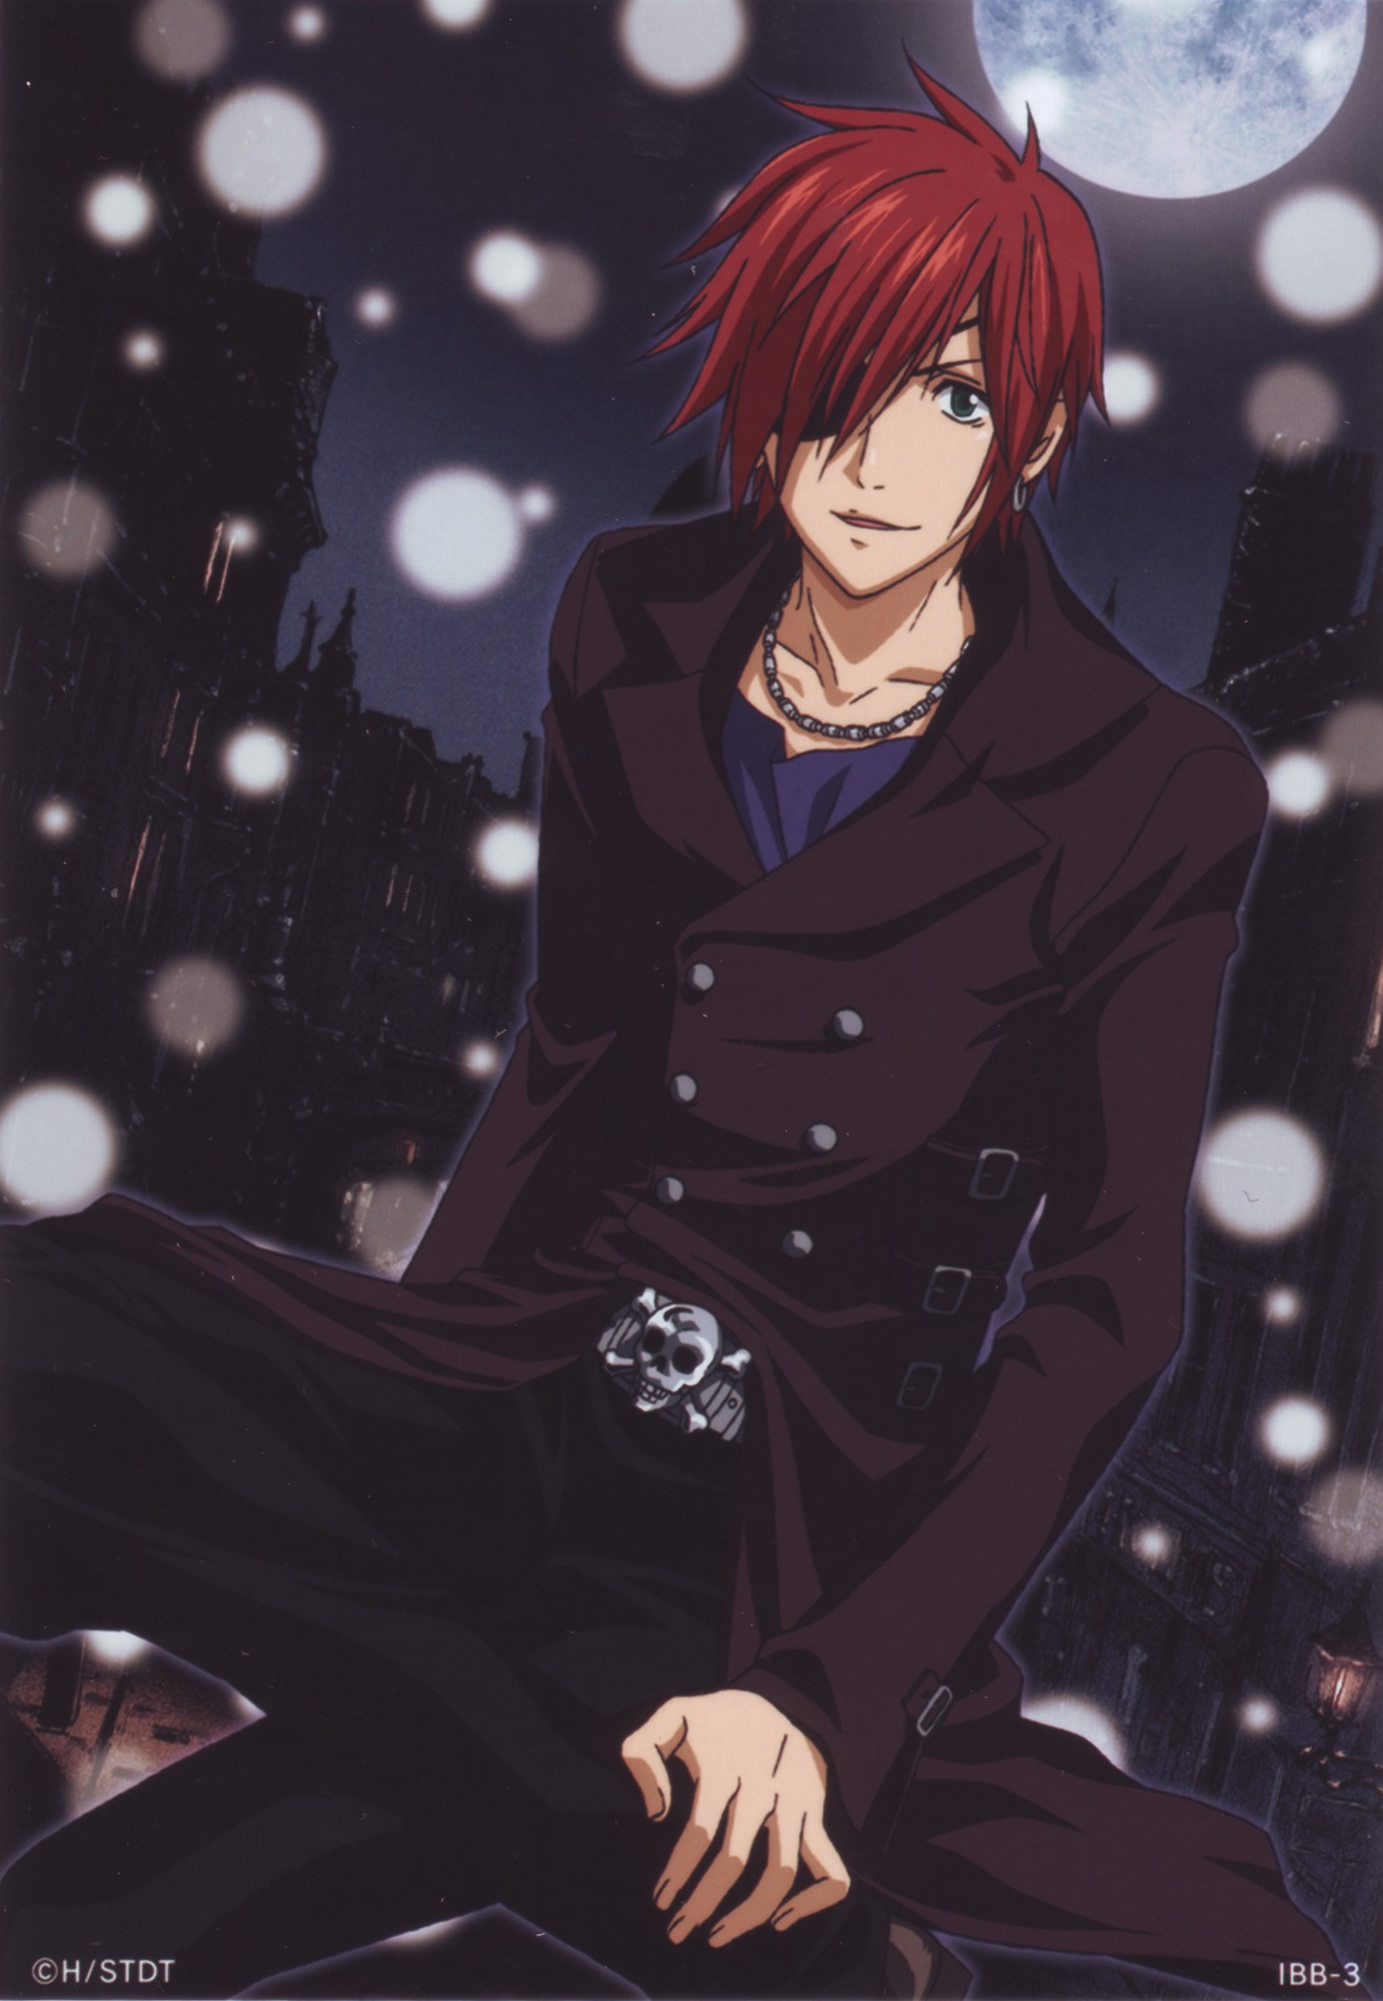 Lavi d gray man photo 26914755 fanpop - D gray man images ...